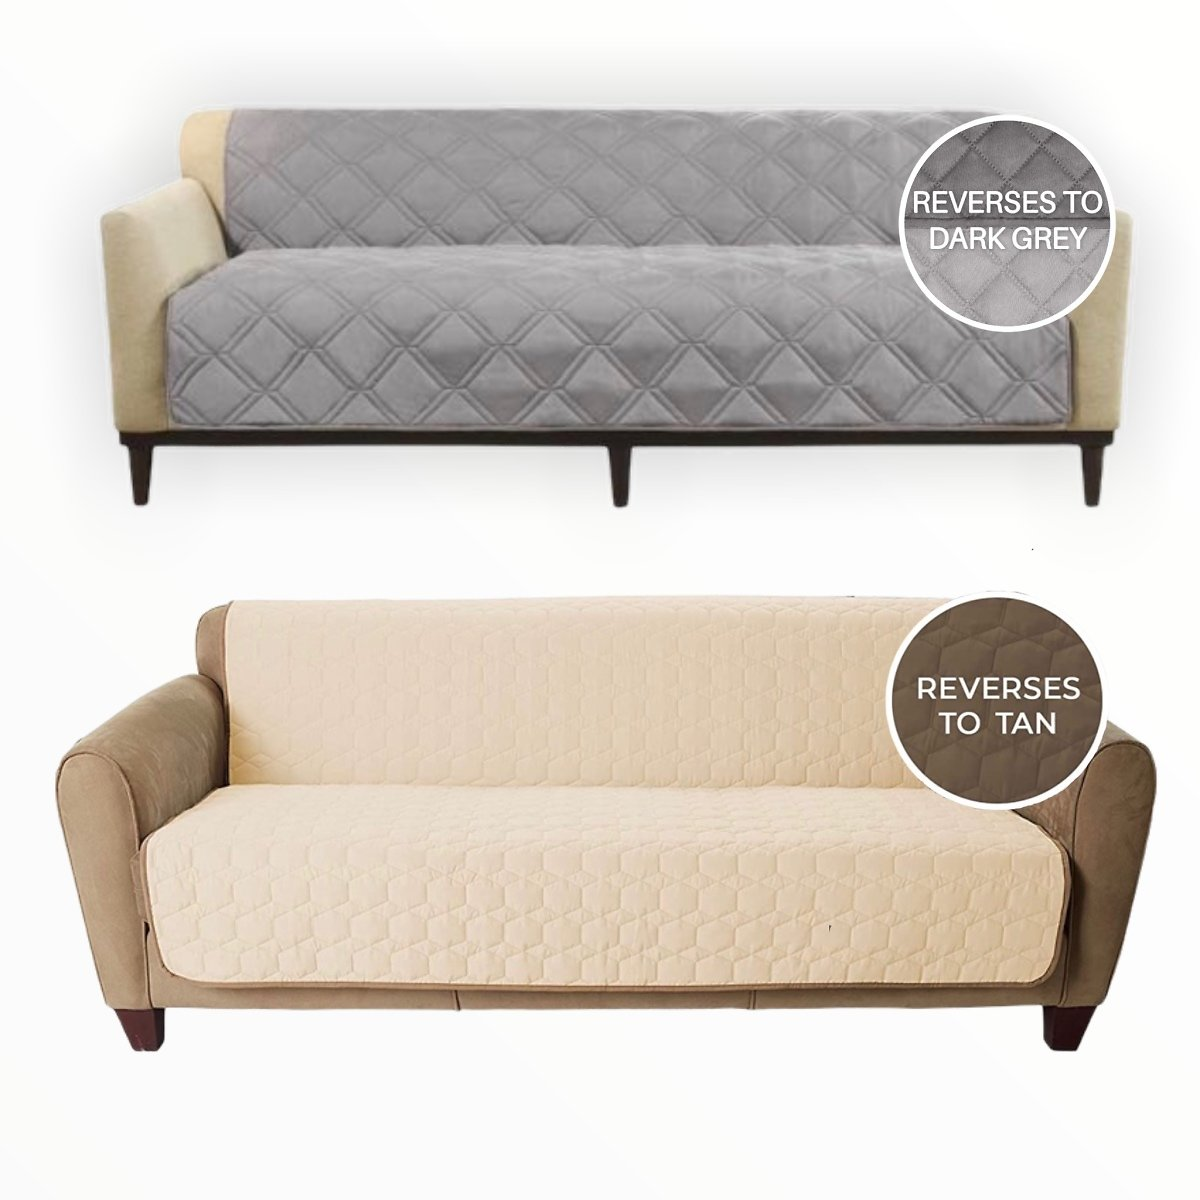 SureFit Reversible Couch / Bed Cover